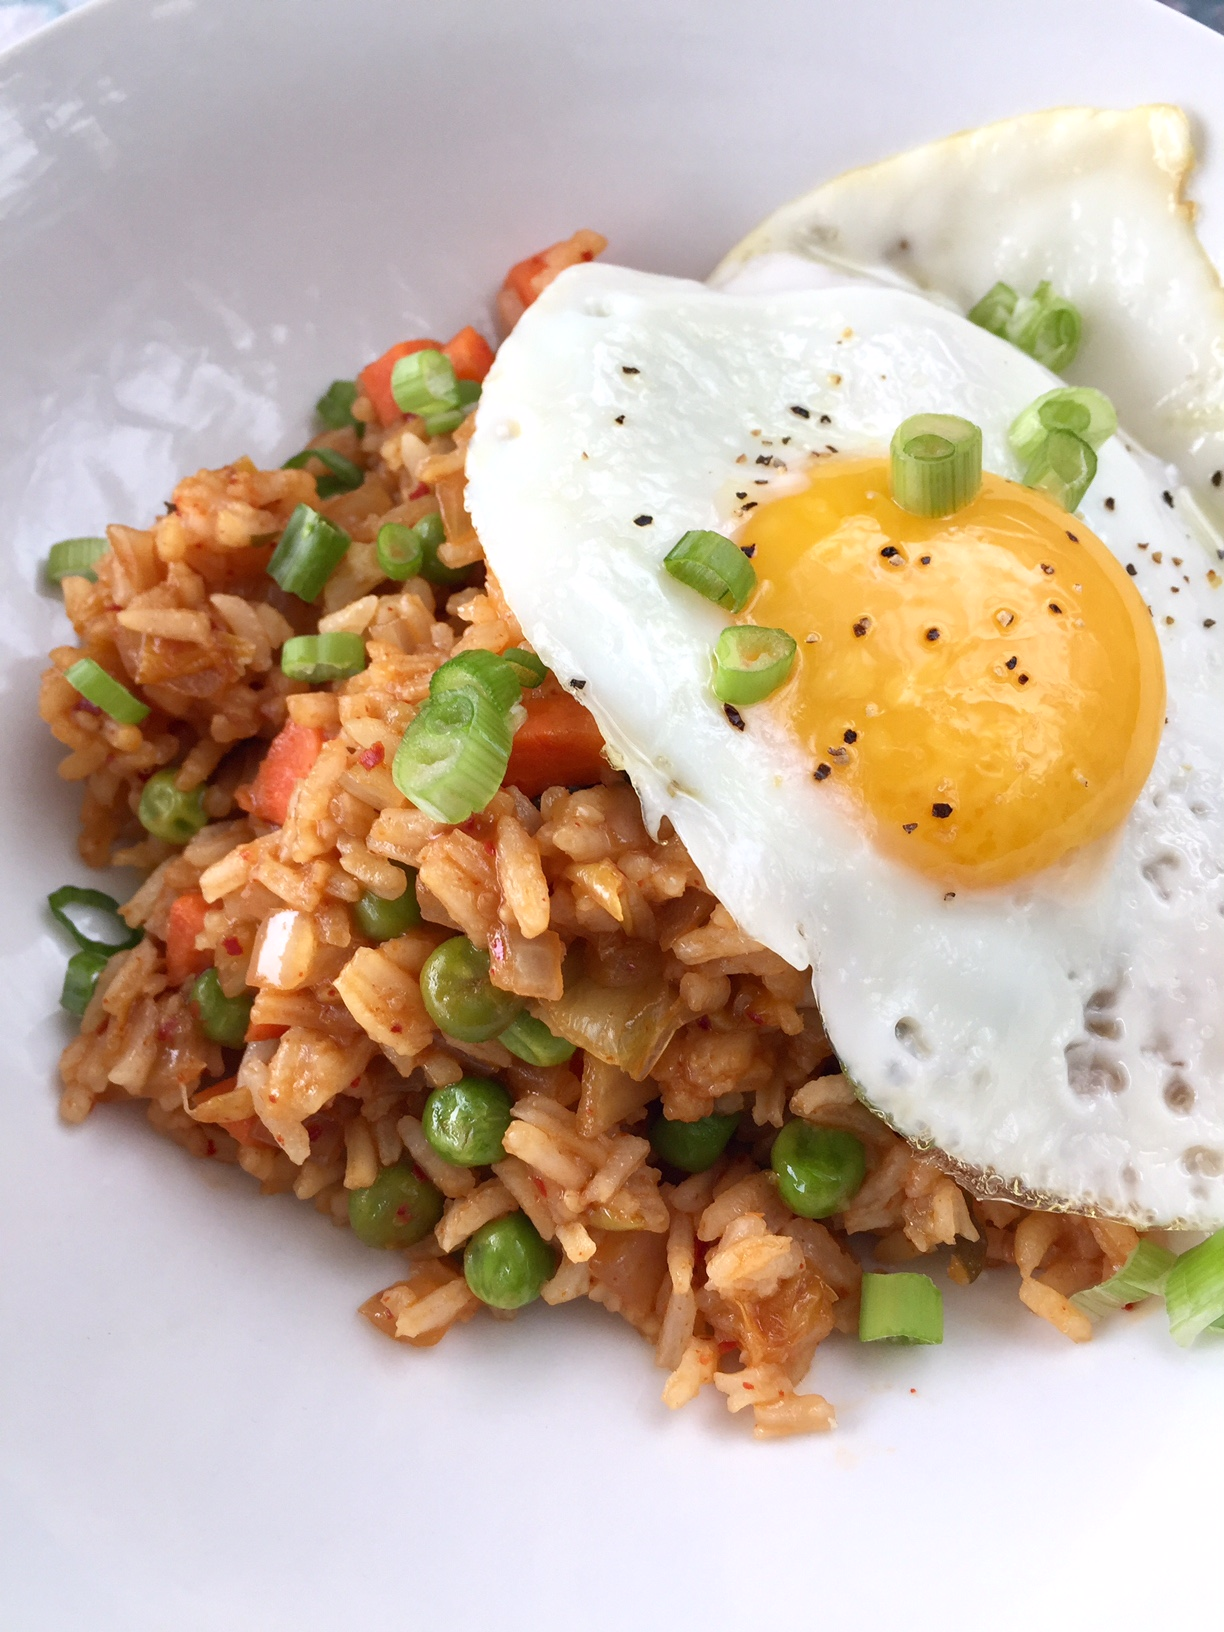 Shop Ethnic Markets to Save Money Try Flavors of the World | Kimchi Fried Rice